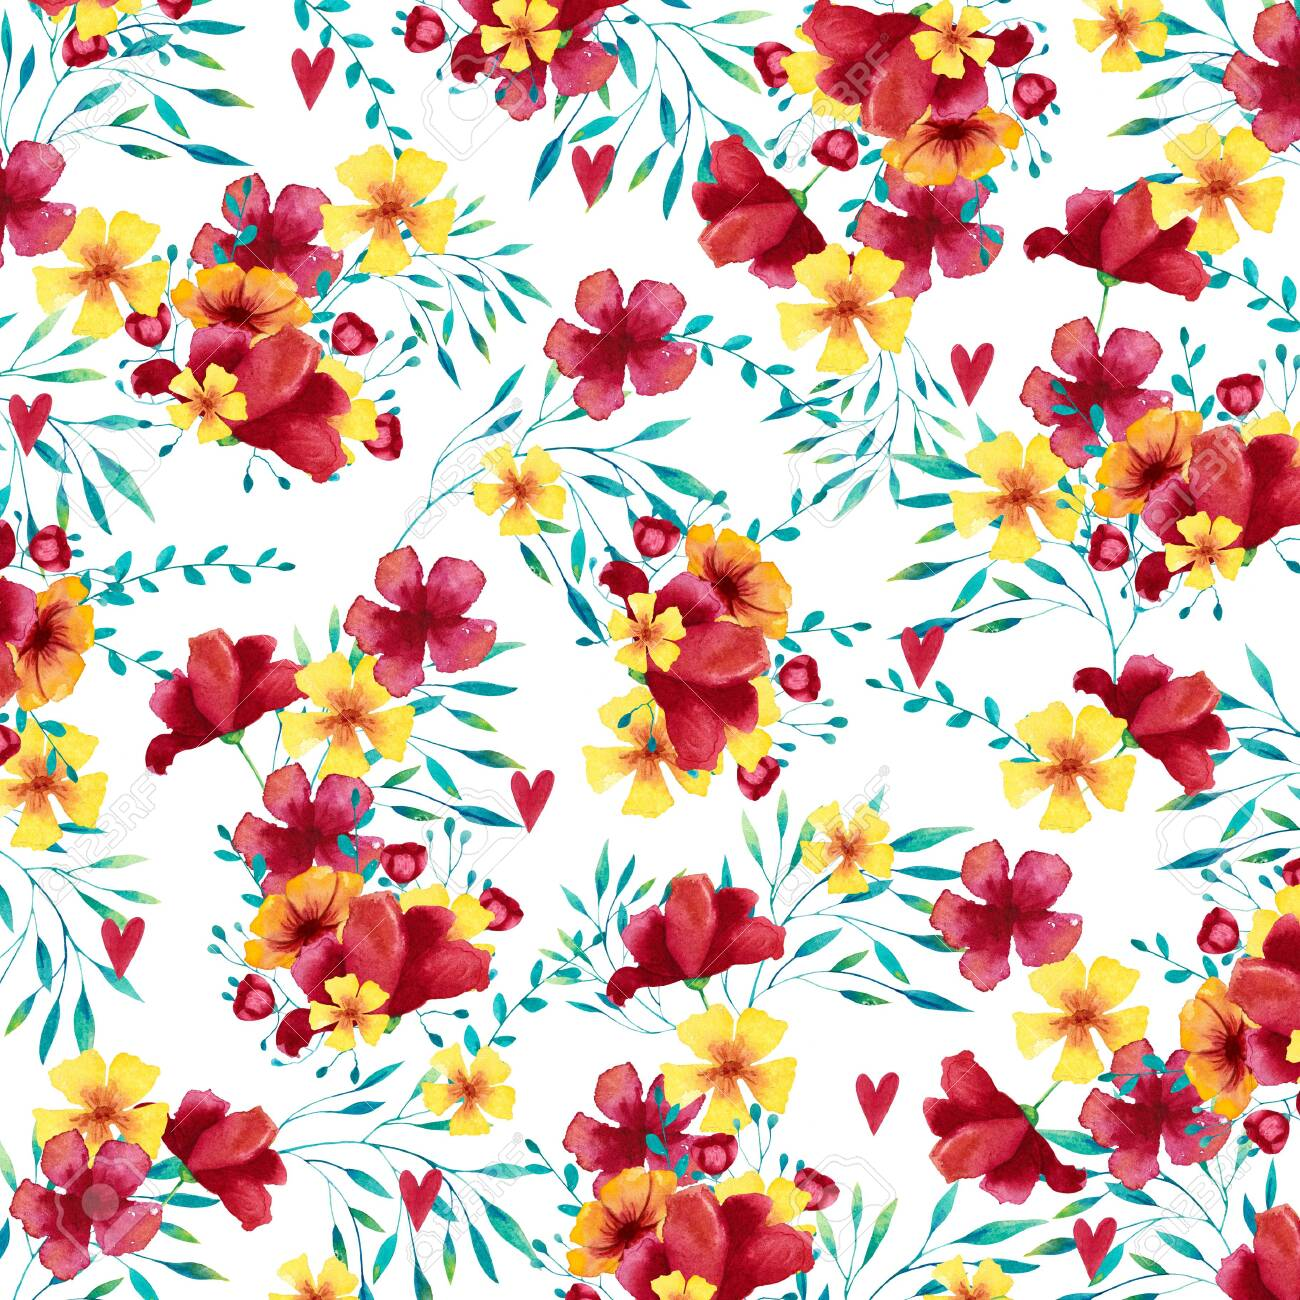 Watercolor background (pattern) with tropical bouquets. Hand drawn illustration. - 128112091